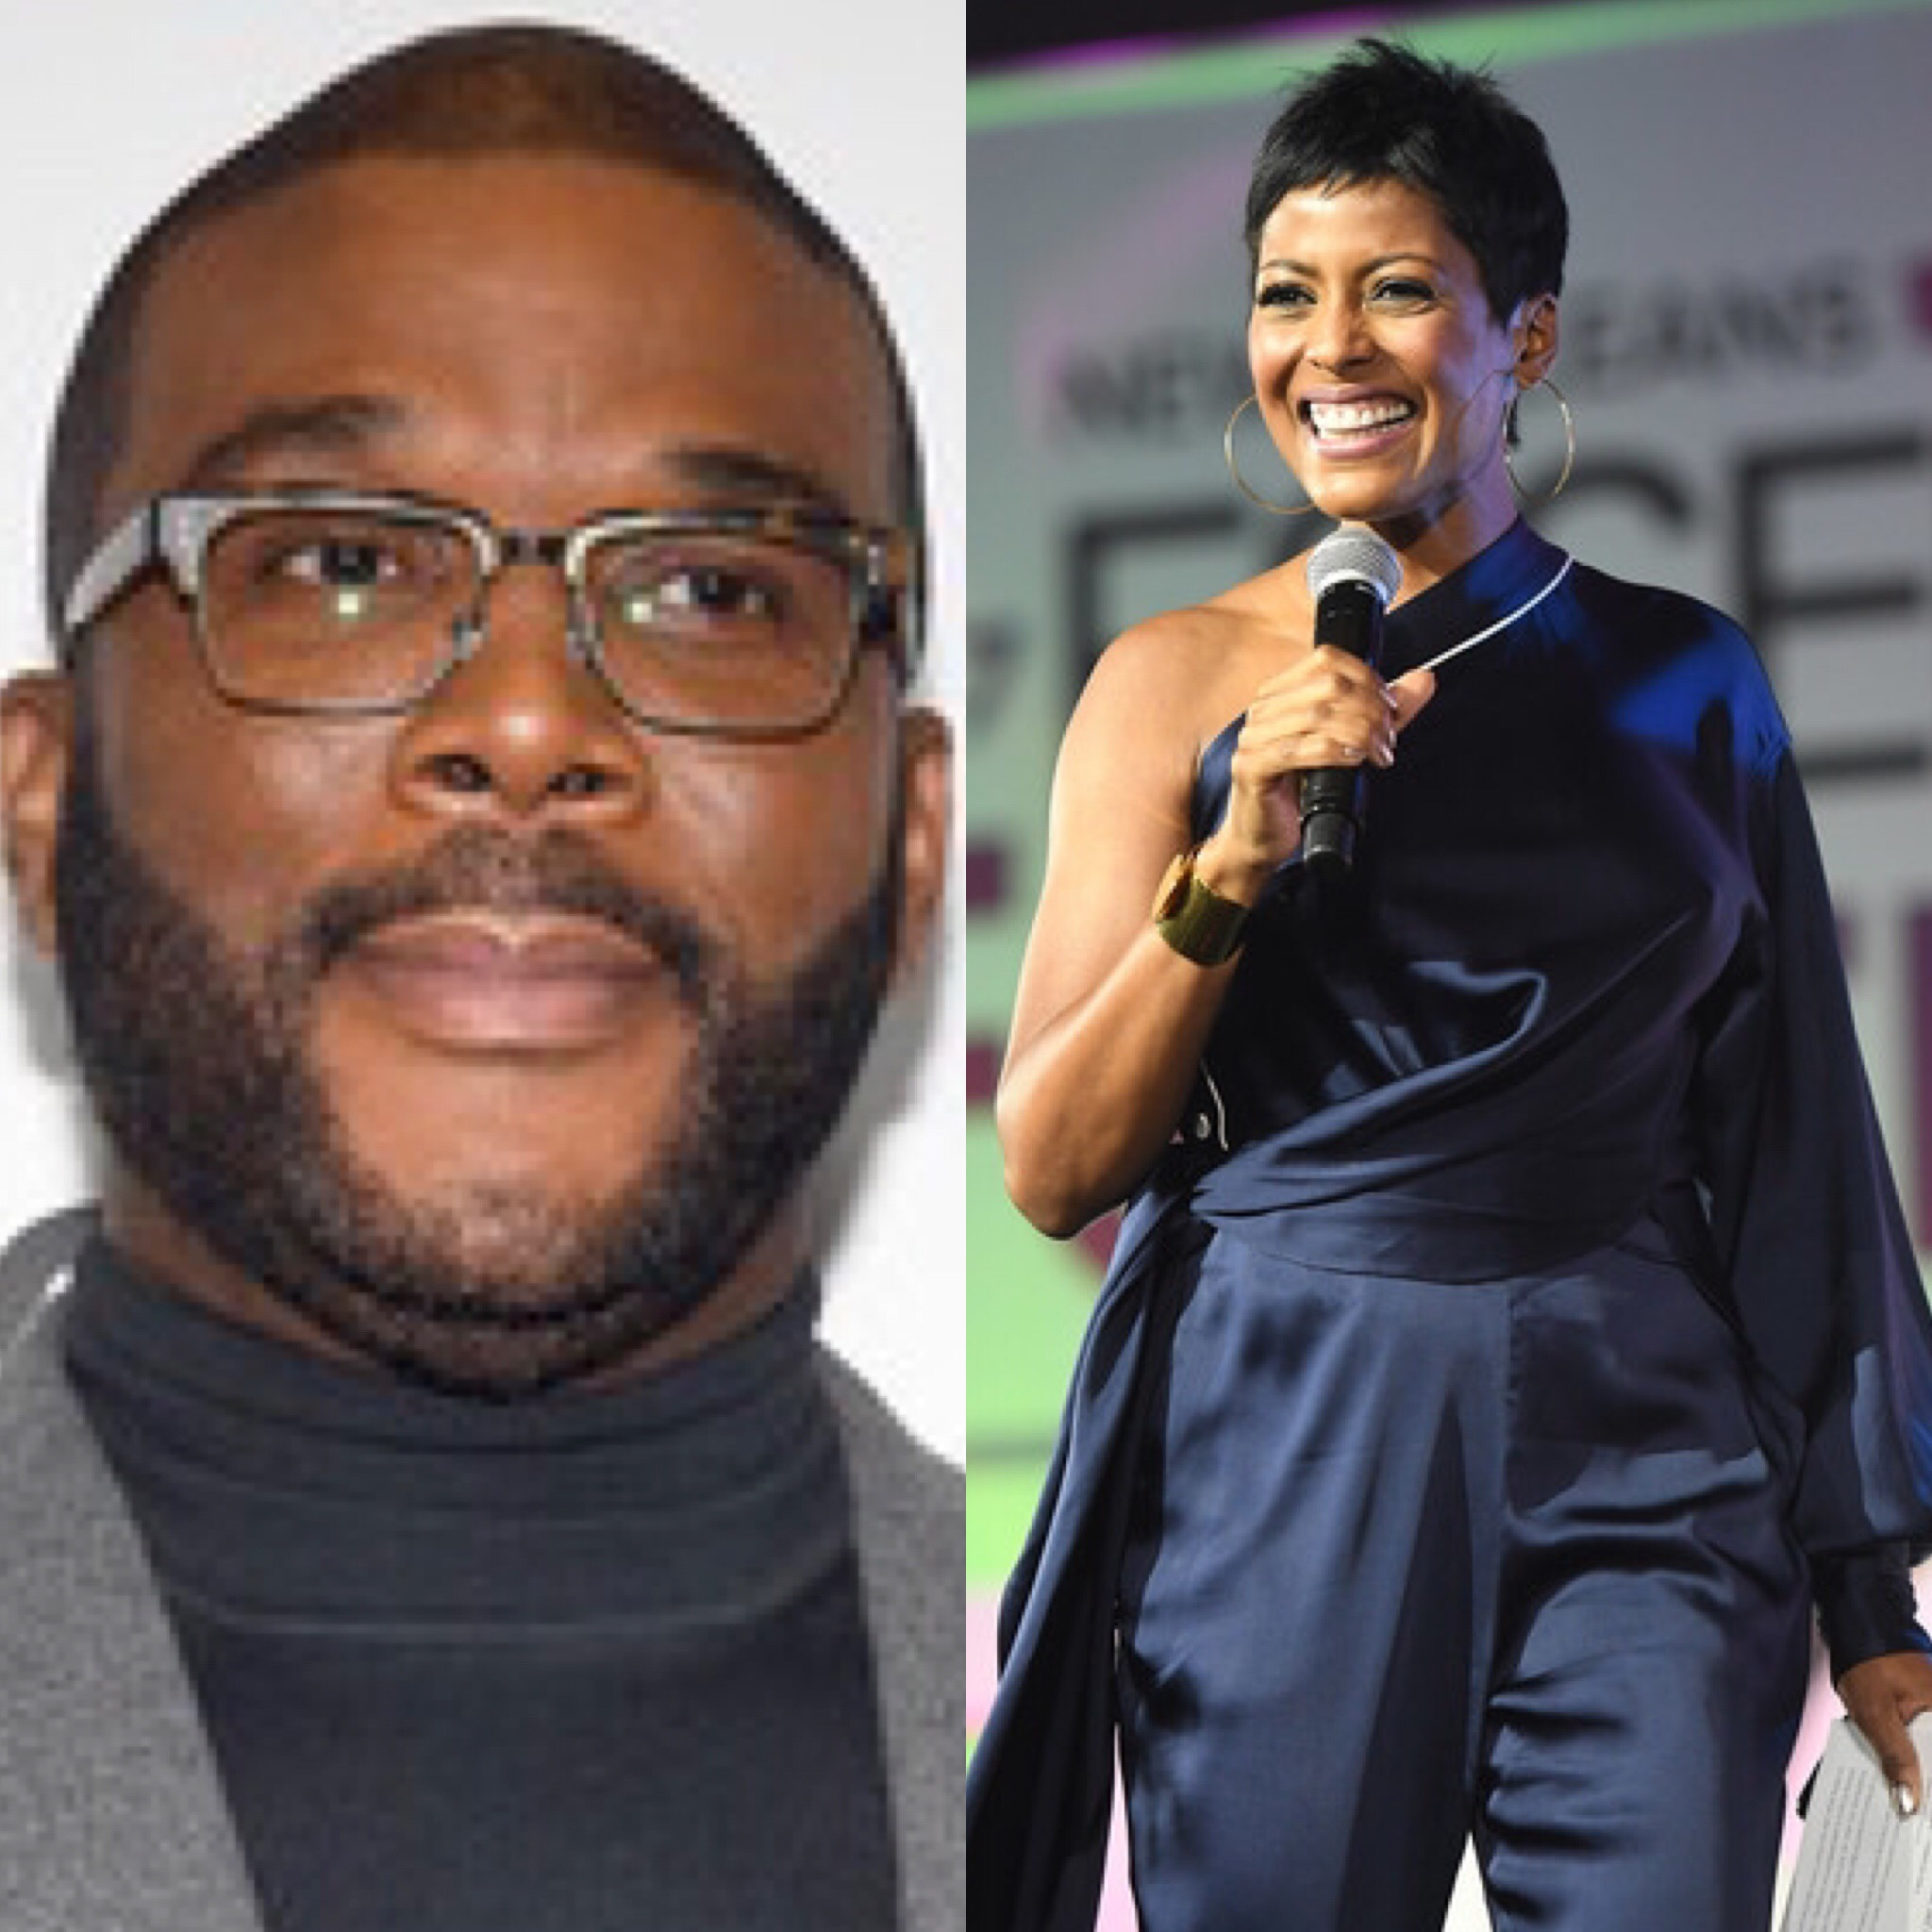 Tyler Perry and Tamron Hall